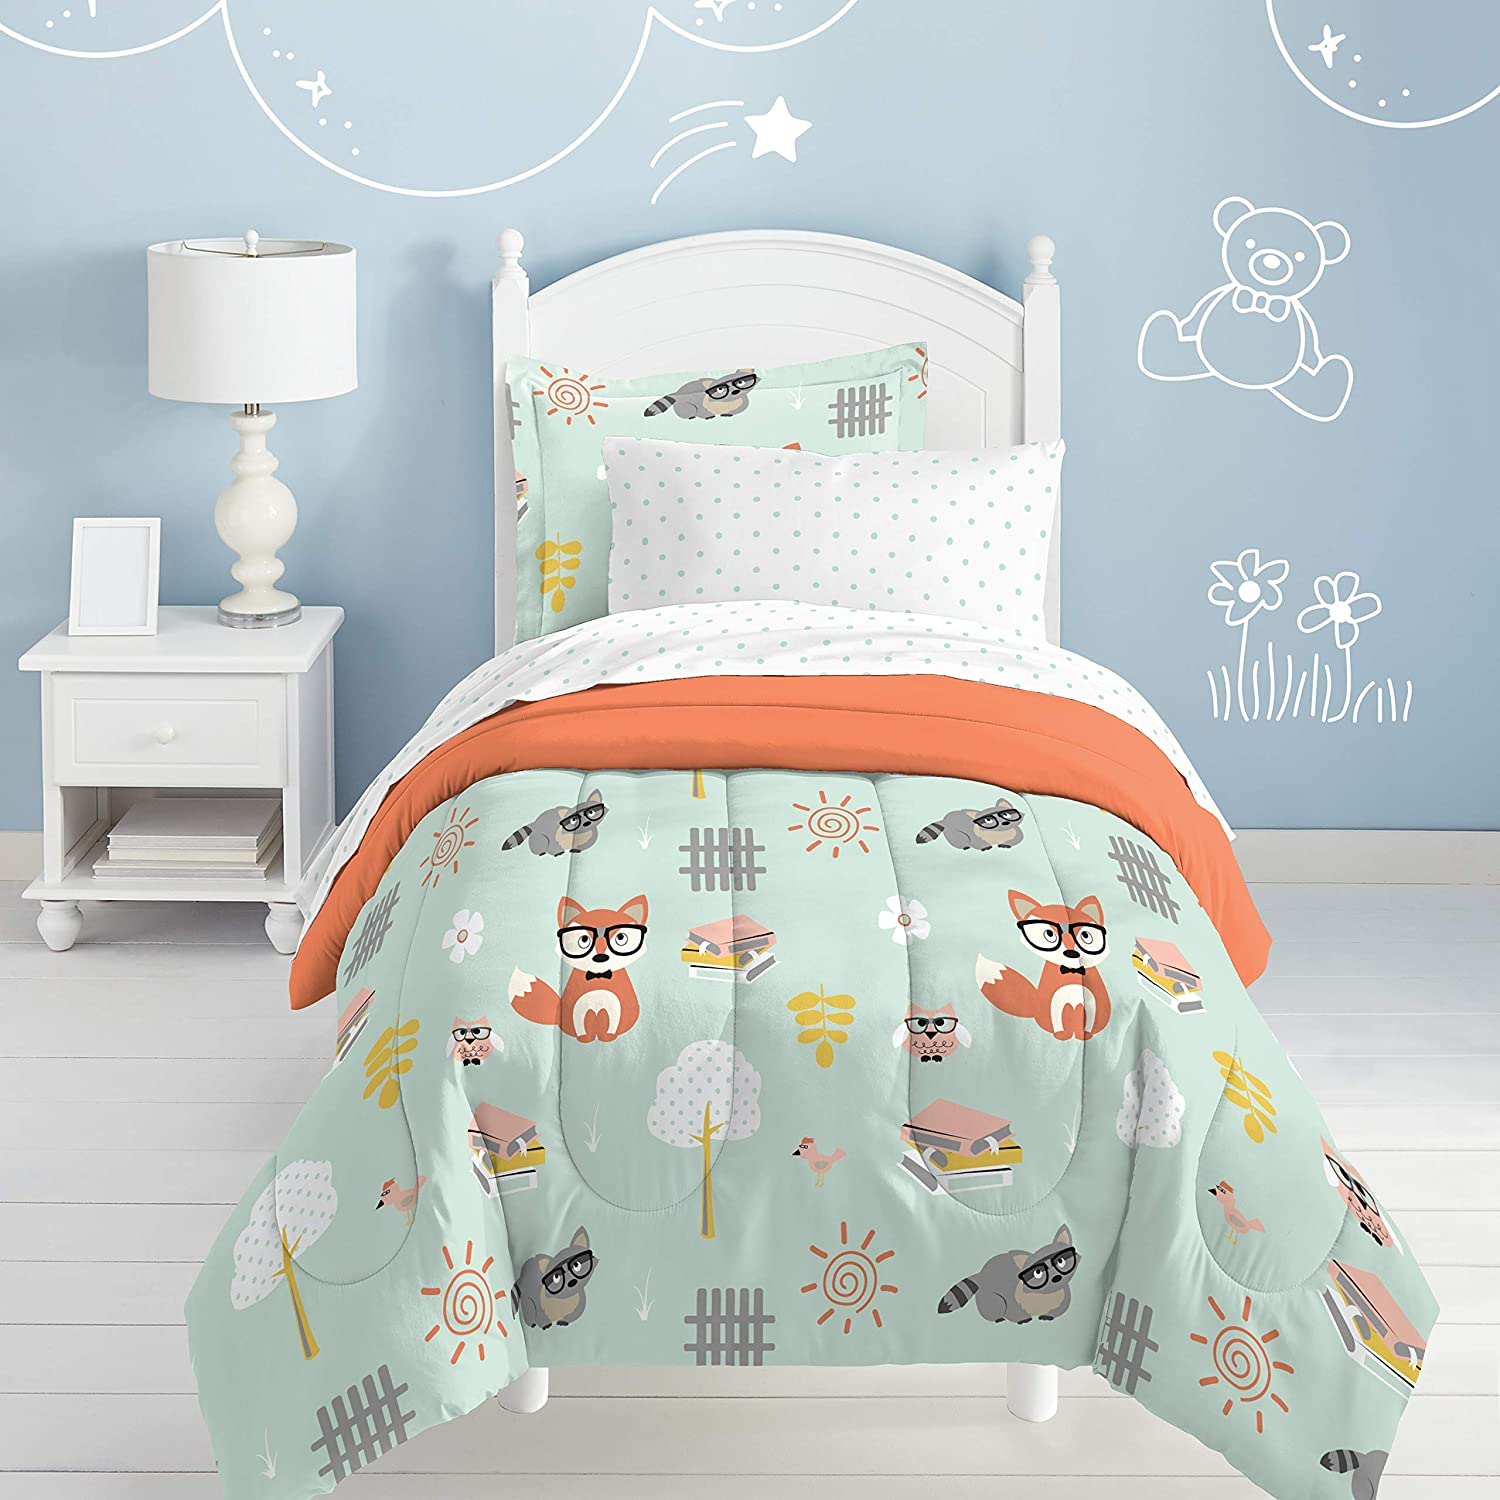 2021 autumn and winter new dream New mail order FACTORY Kids 5-Piece Complete Super Set Easy-Wash Mic Soft